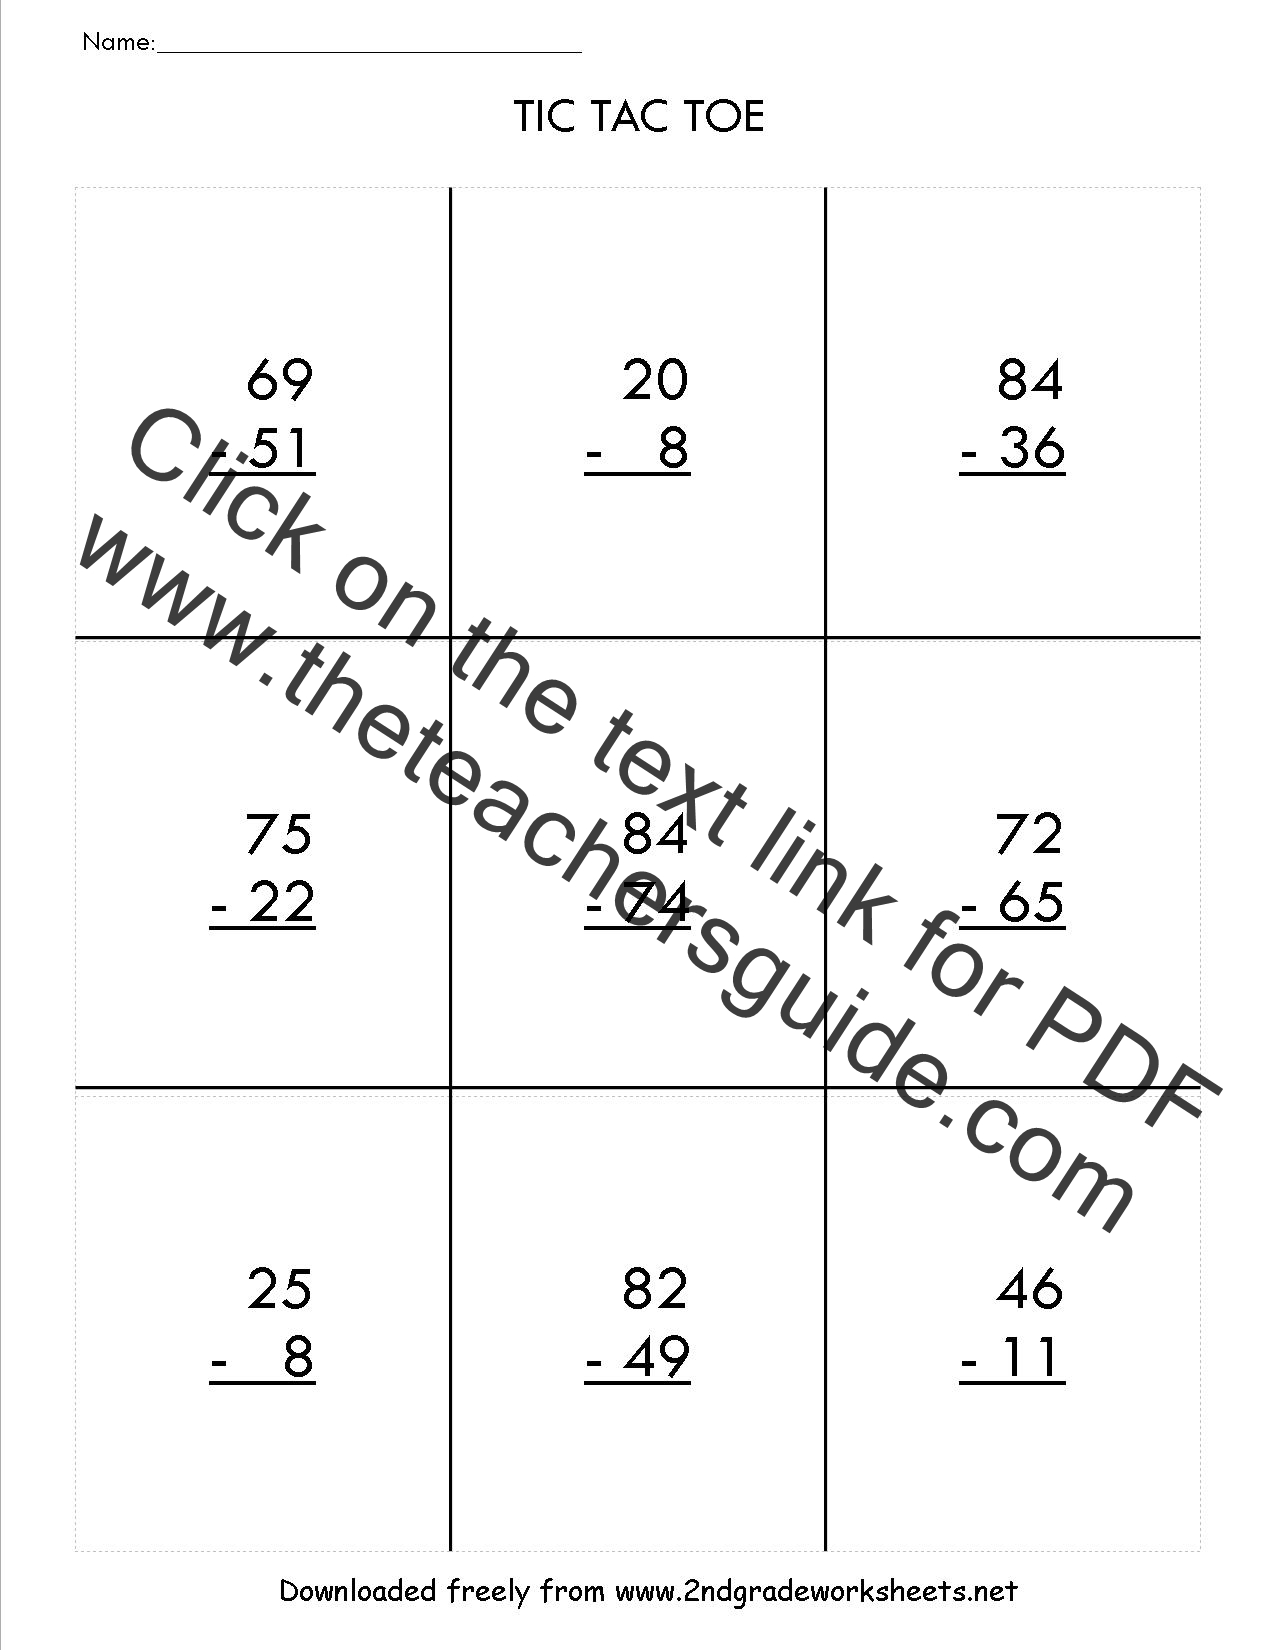 Printables Double Digit Subtraction With Regrouping Worksheets two digit subtraction worksheets tic tac toe